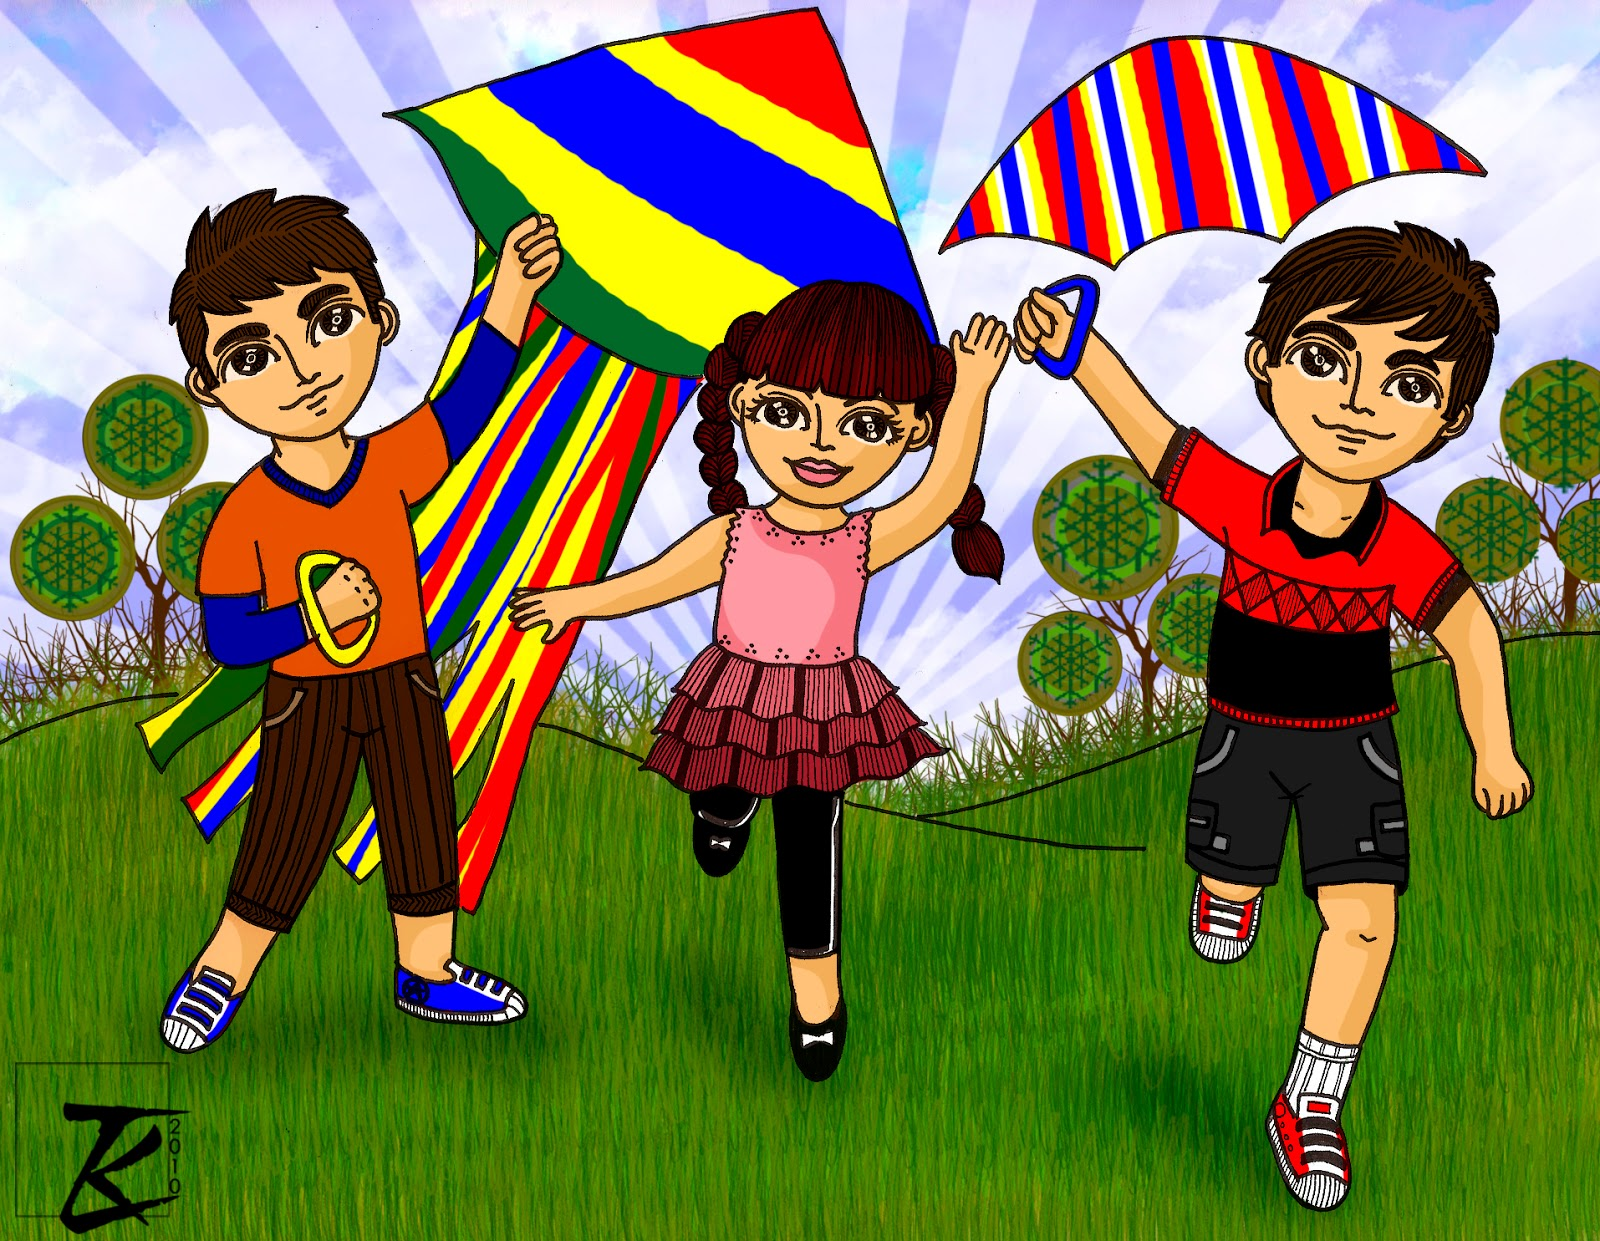 flying kites english essay there are different kinds of kites such as snakes kites peacock kites other different types of kites we can see lot of kite designs in the sky